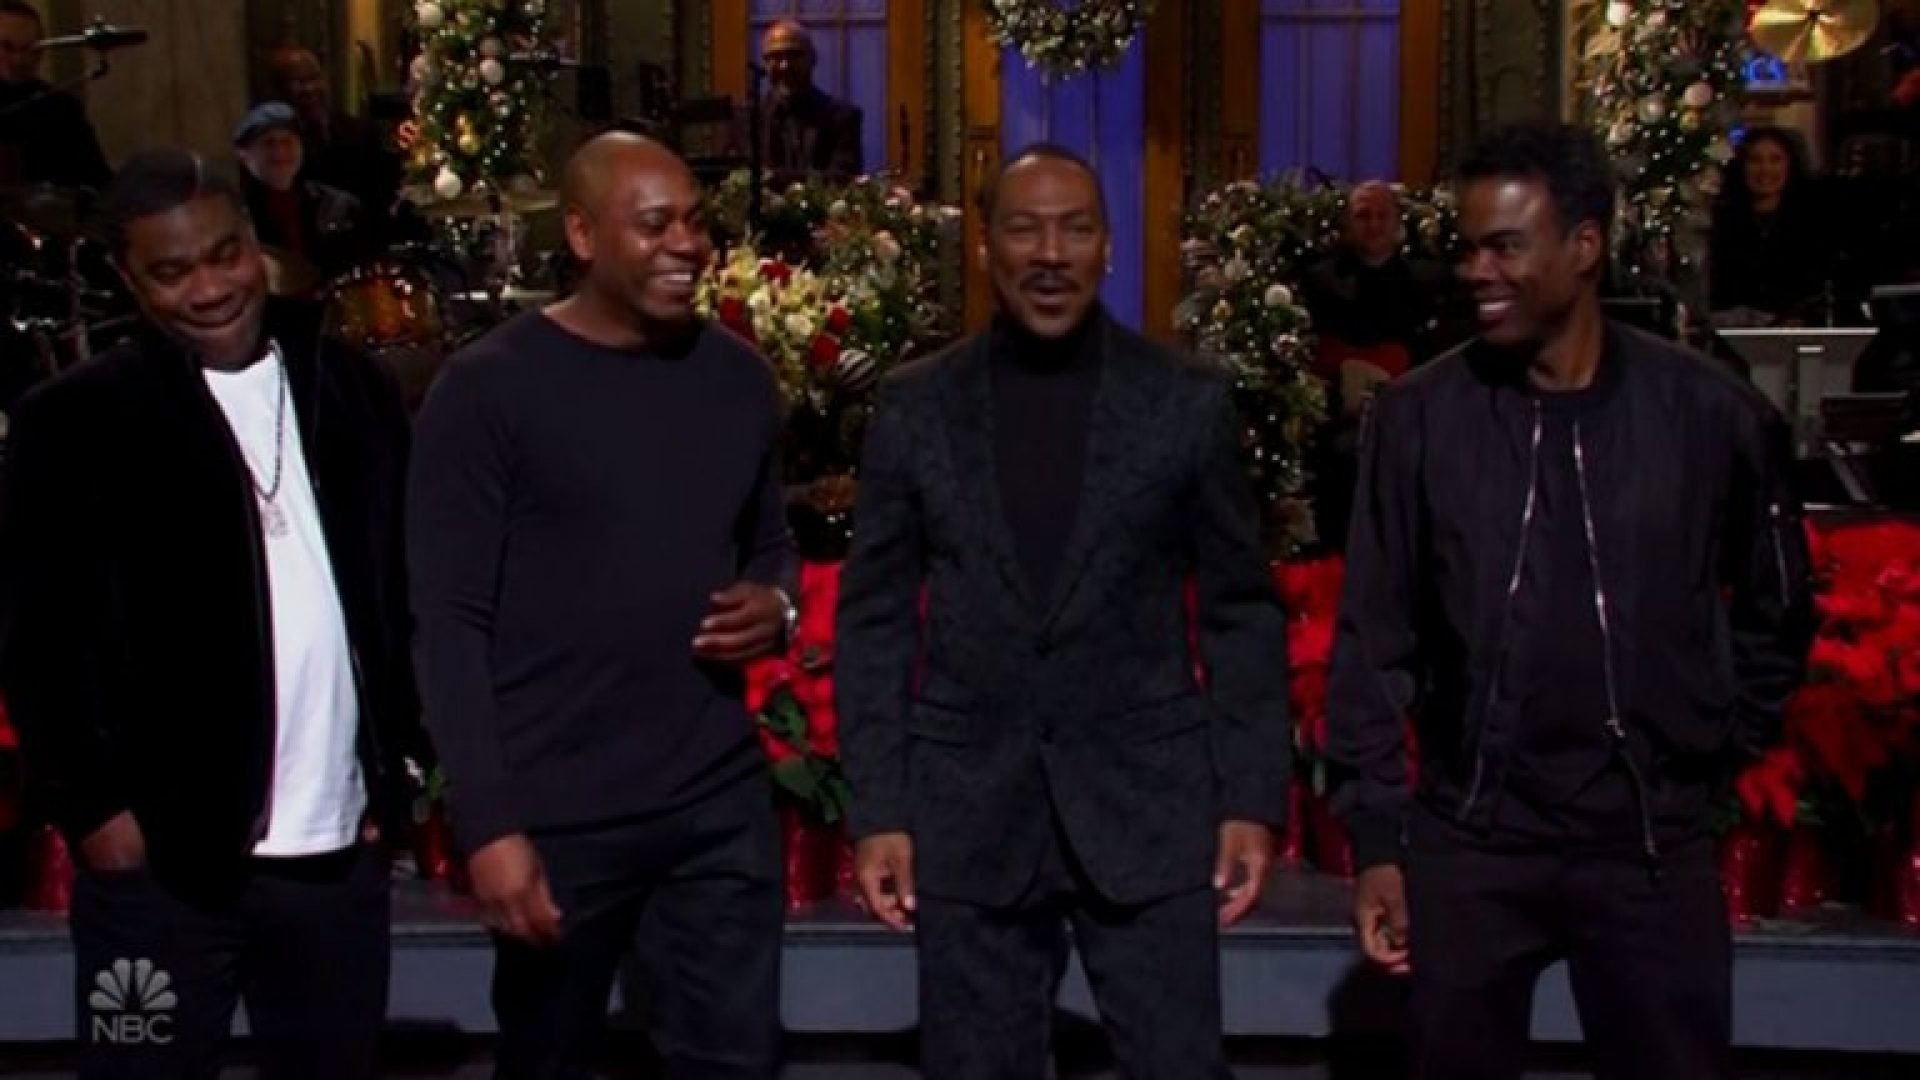 eddie murphy brings comedy kings dave chappelle chris rock and tracy morgan to his snl return essence eddie murphy brings comedy kings dave